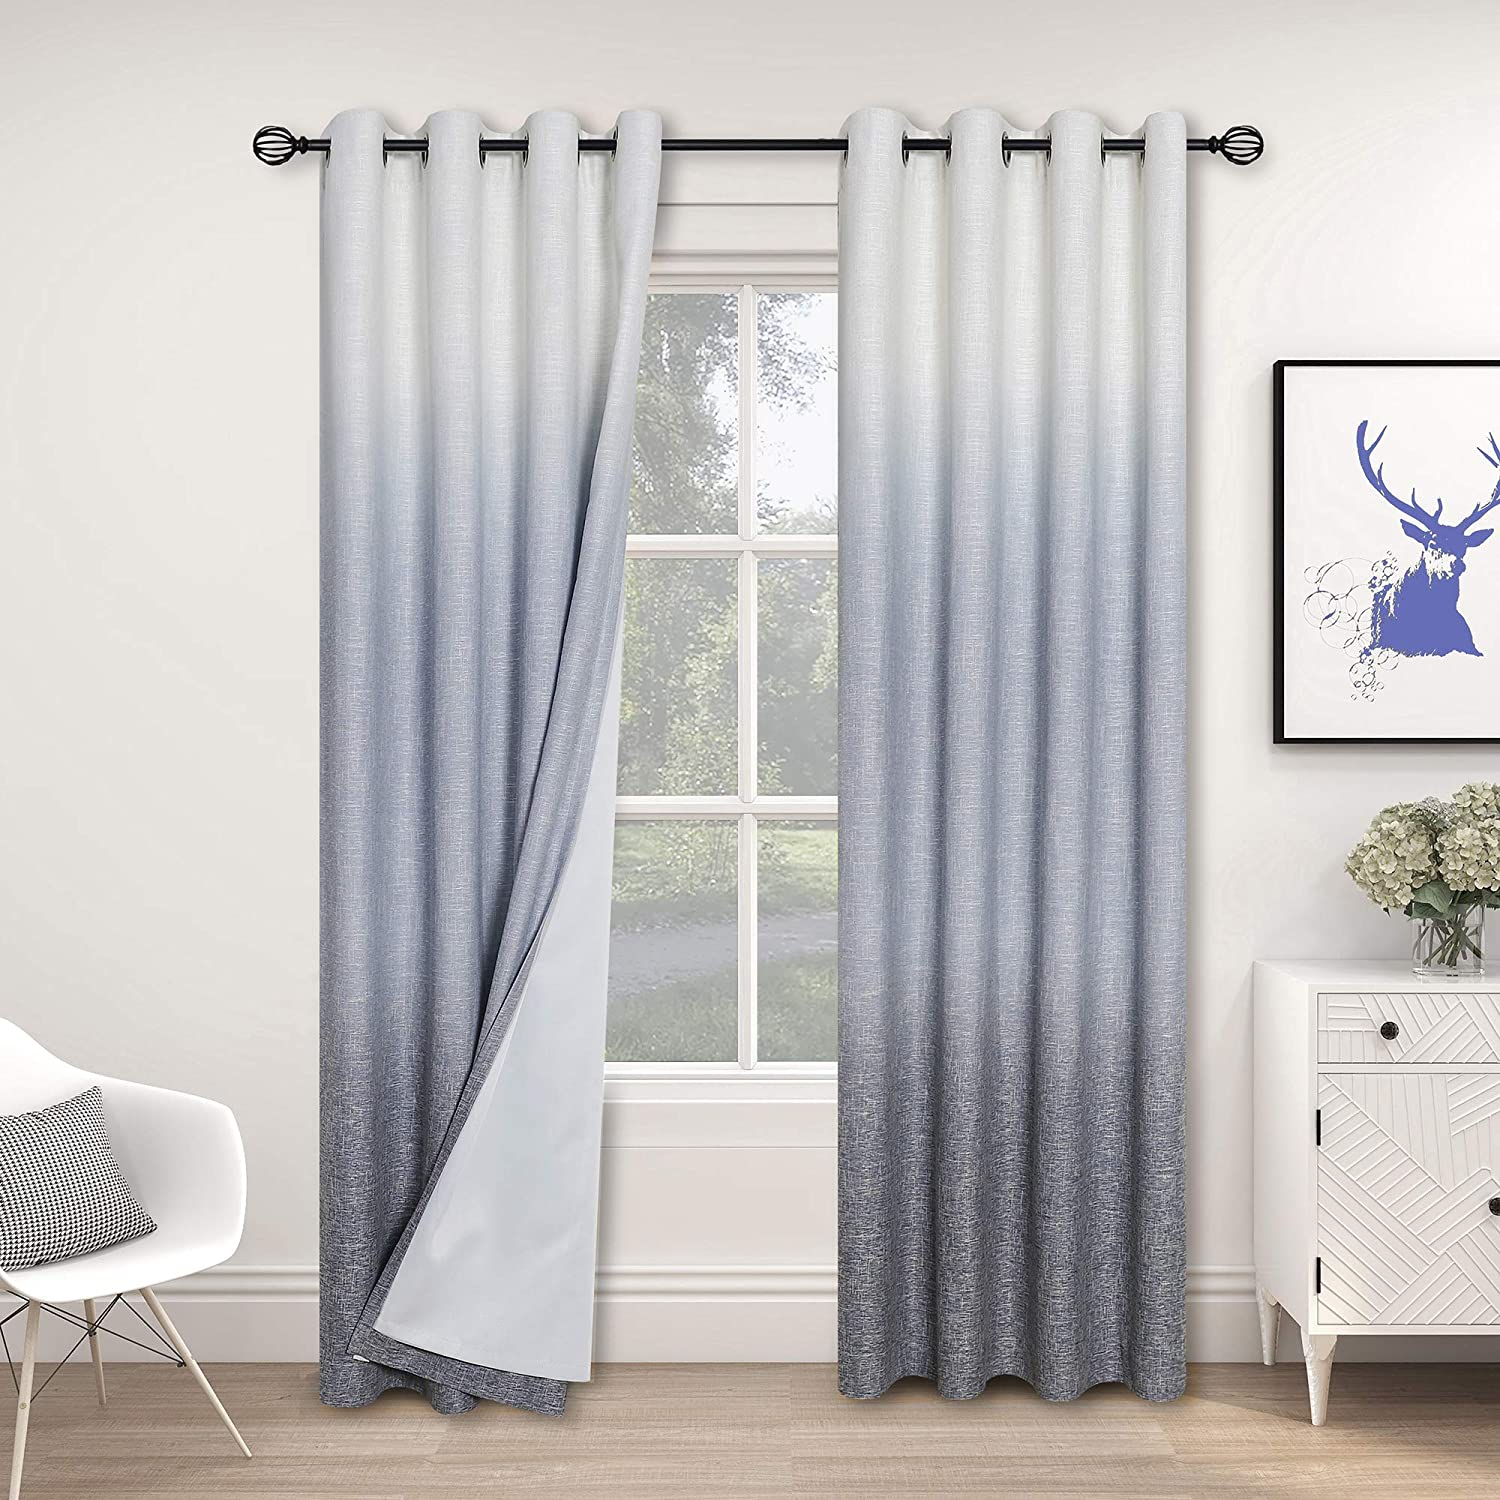 Central Super beauty product restock Classic quality top Park Ombre 100% Blackout Room Curtains Darkening Window